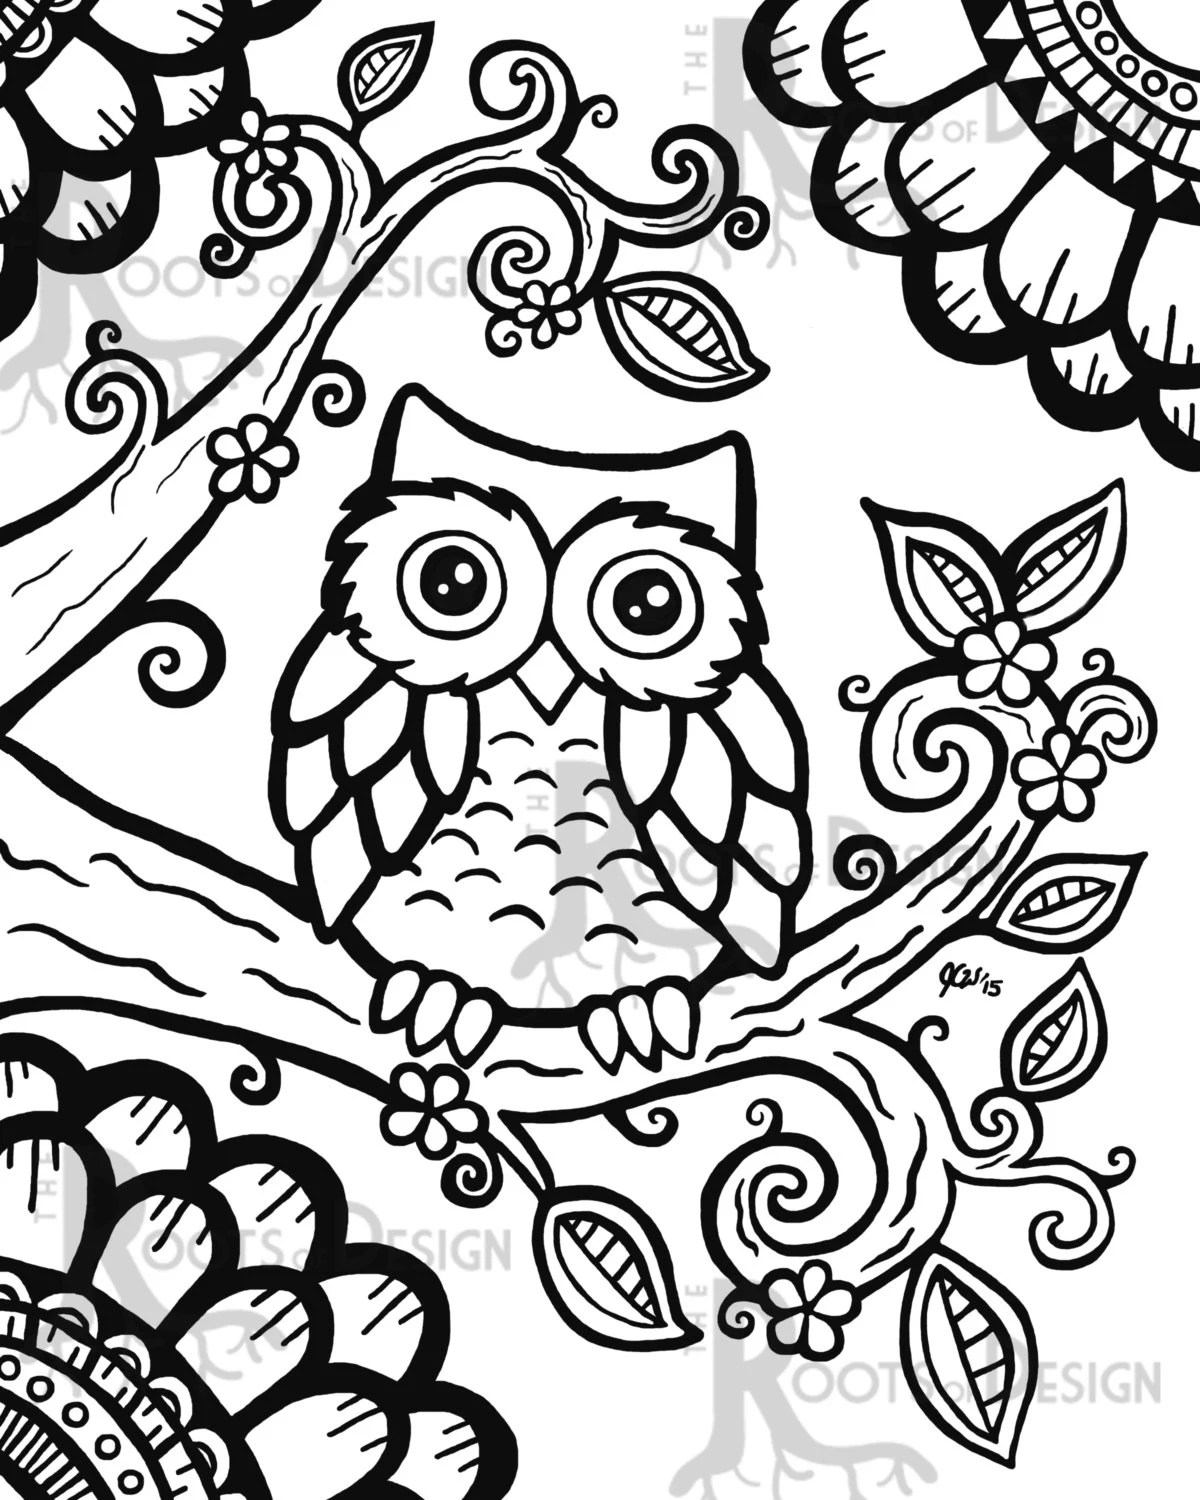 instant download coloring page cute owl zentangle inspired doodle